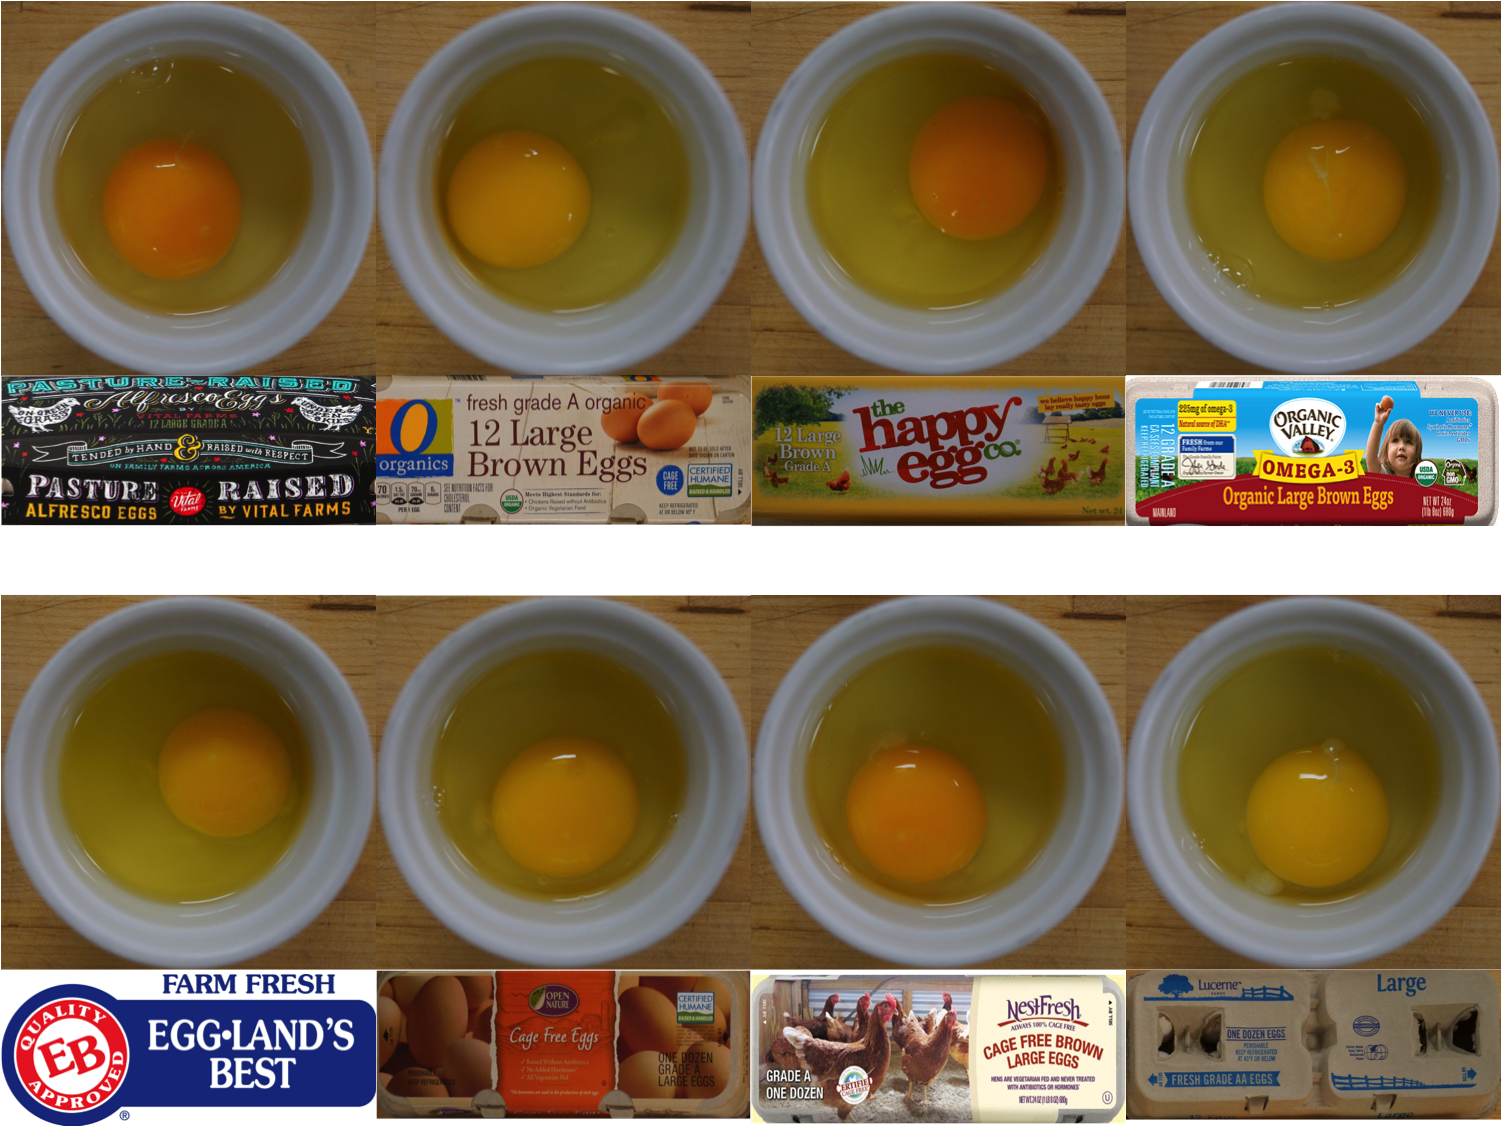 NestFresh, Lucerne, Open Nature Cage Free, the Happy Egg Co., Eggland's Best, O Organics, Organic Valley Omega-3, and Alfresco Pasture Raised Eggs by Vital Farms and egg yolk color